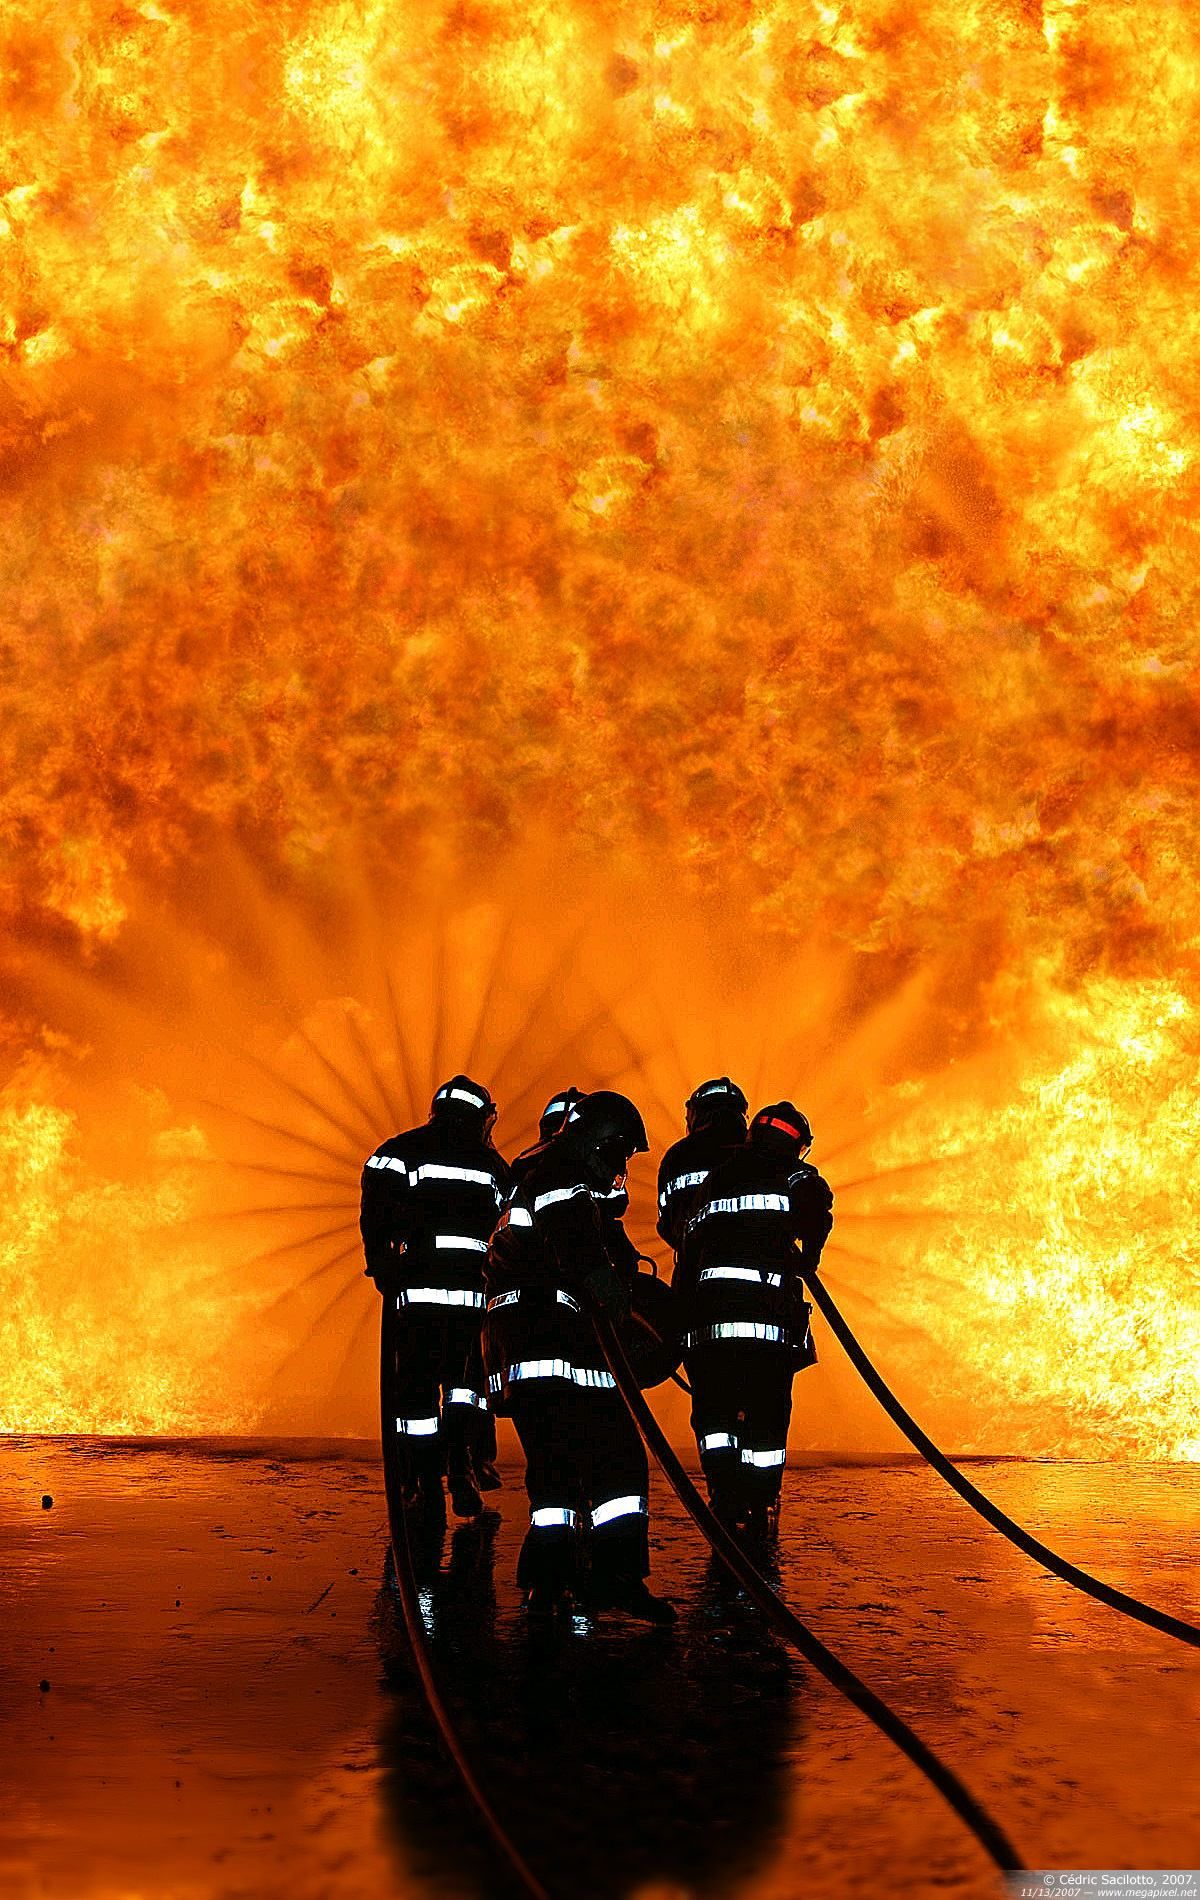 firefighter logo wallpaper Google Search Firefighter